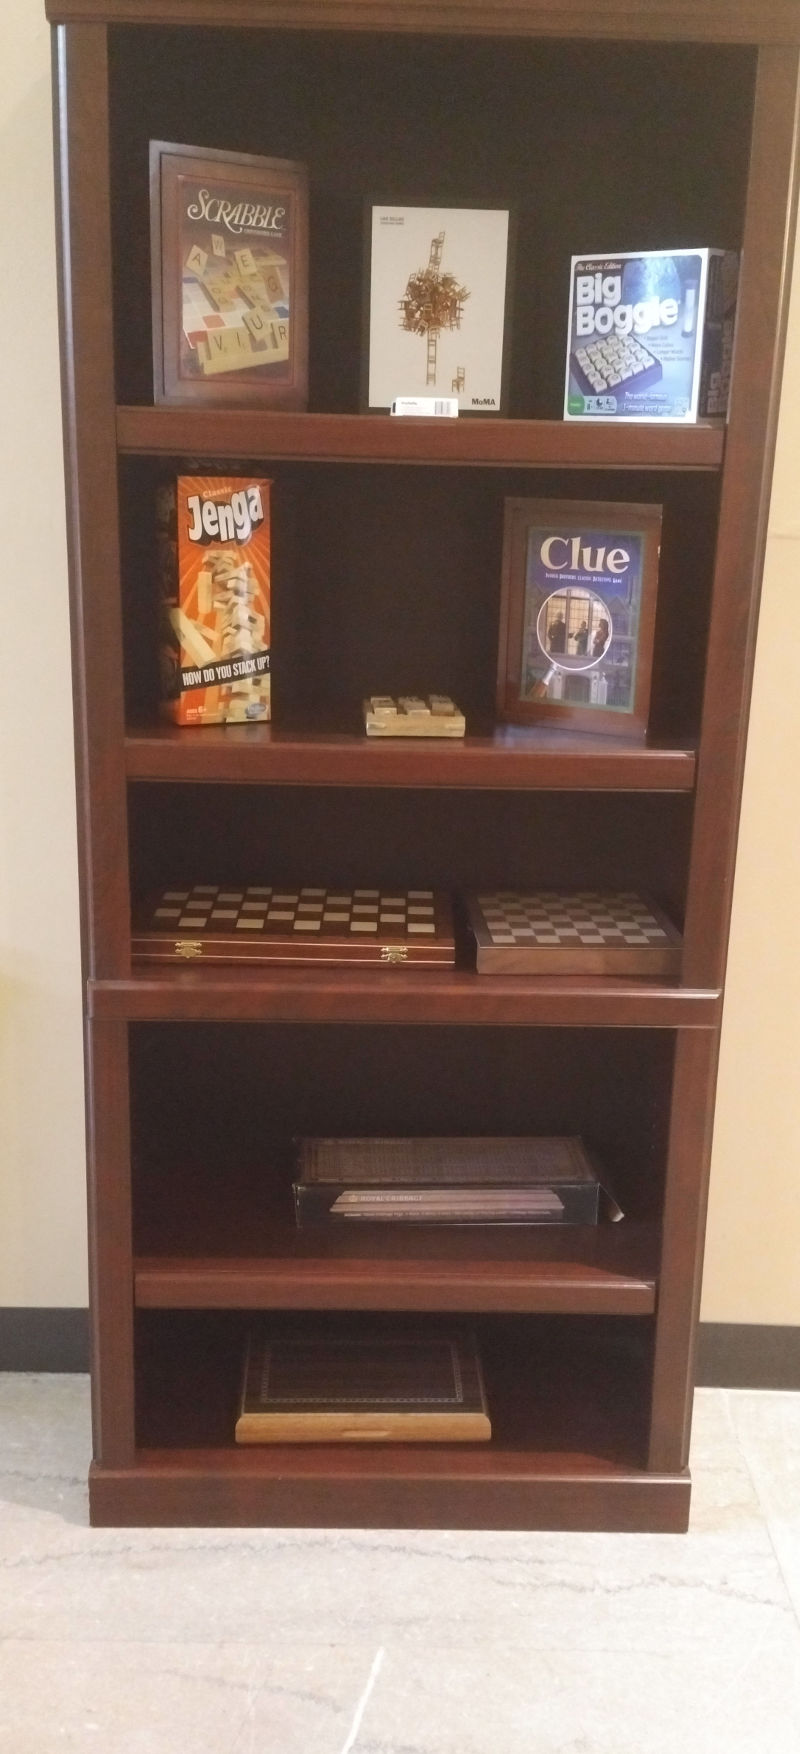 Shelving unit with games